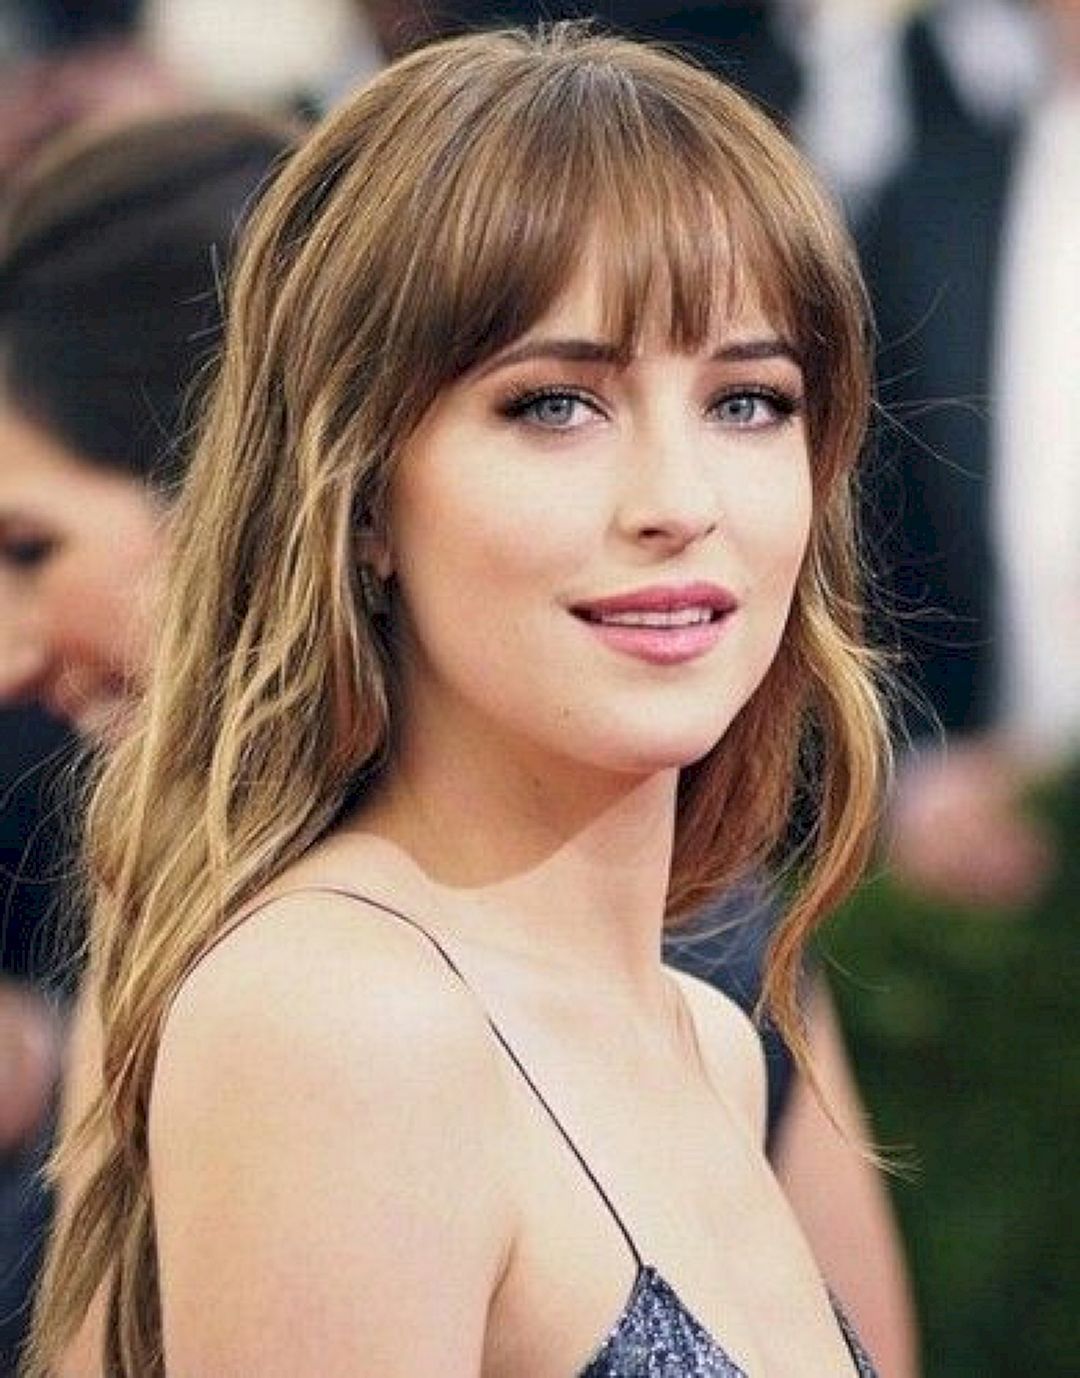 40 Awesome Hairstyles With Bangs 40 Awesome Hairstyles With Bangs Awesome Bangs Bobhairstyle In 2020 Glamorous Hair Long Hair With Bangs Hairstyles With Bangs